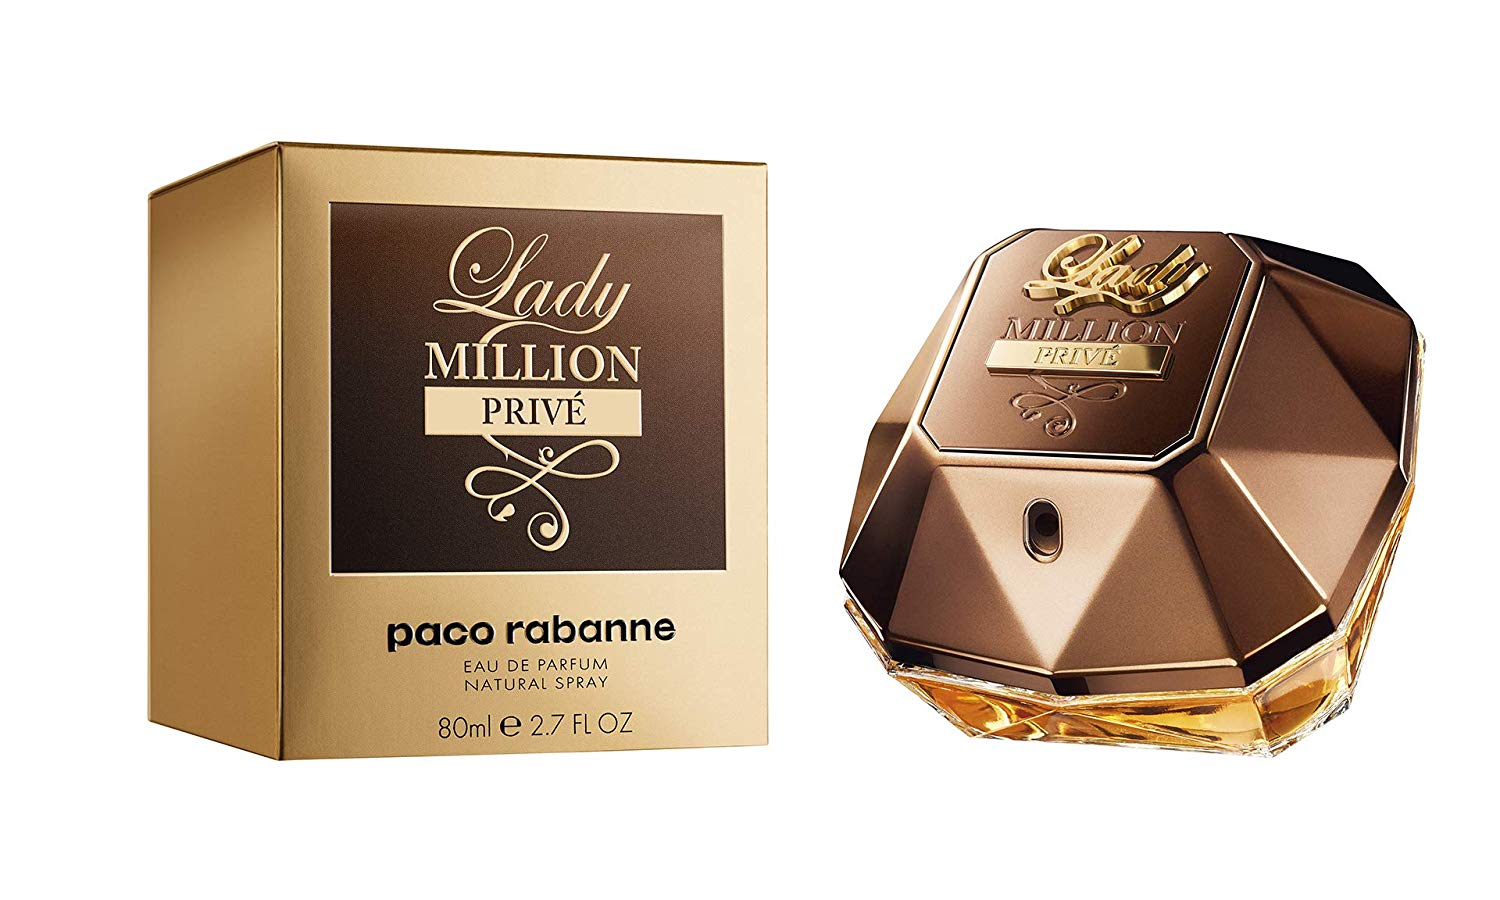 bb7d58d49d Lady Million Prive by Paco Rabanne Perfume for Women 2.7 oz EDP Spray New  in Box